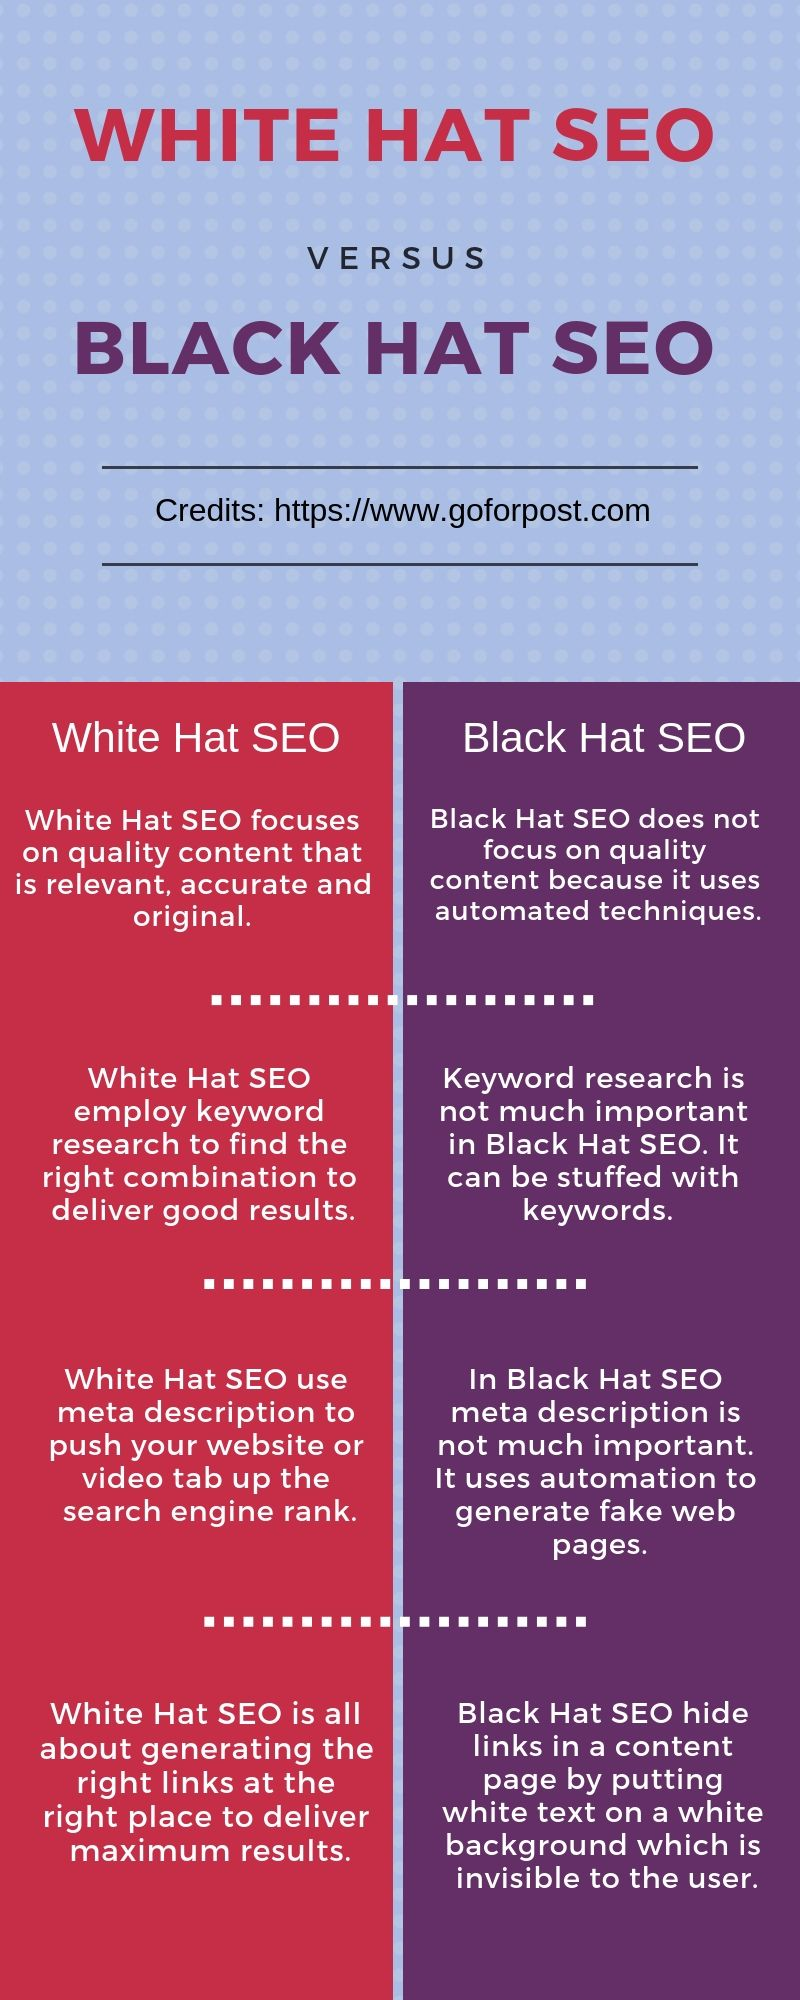 Are you also confused which is better- White HAT SEO or